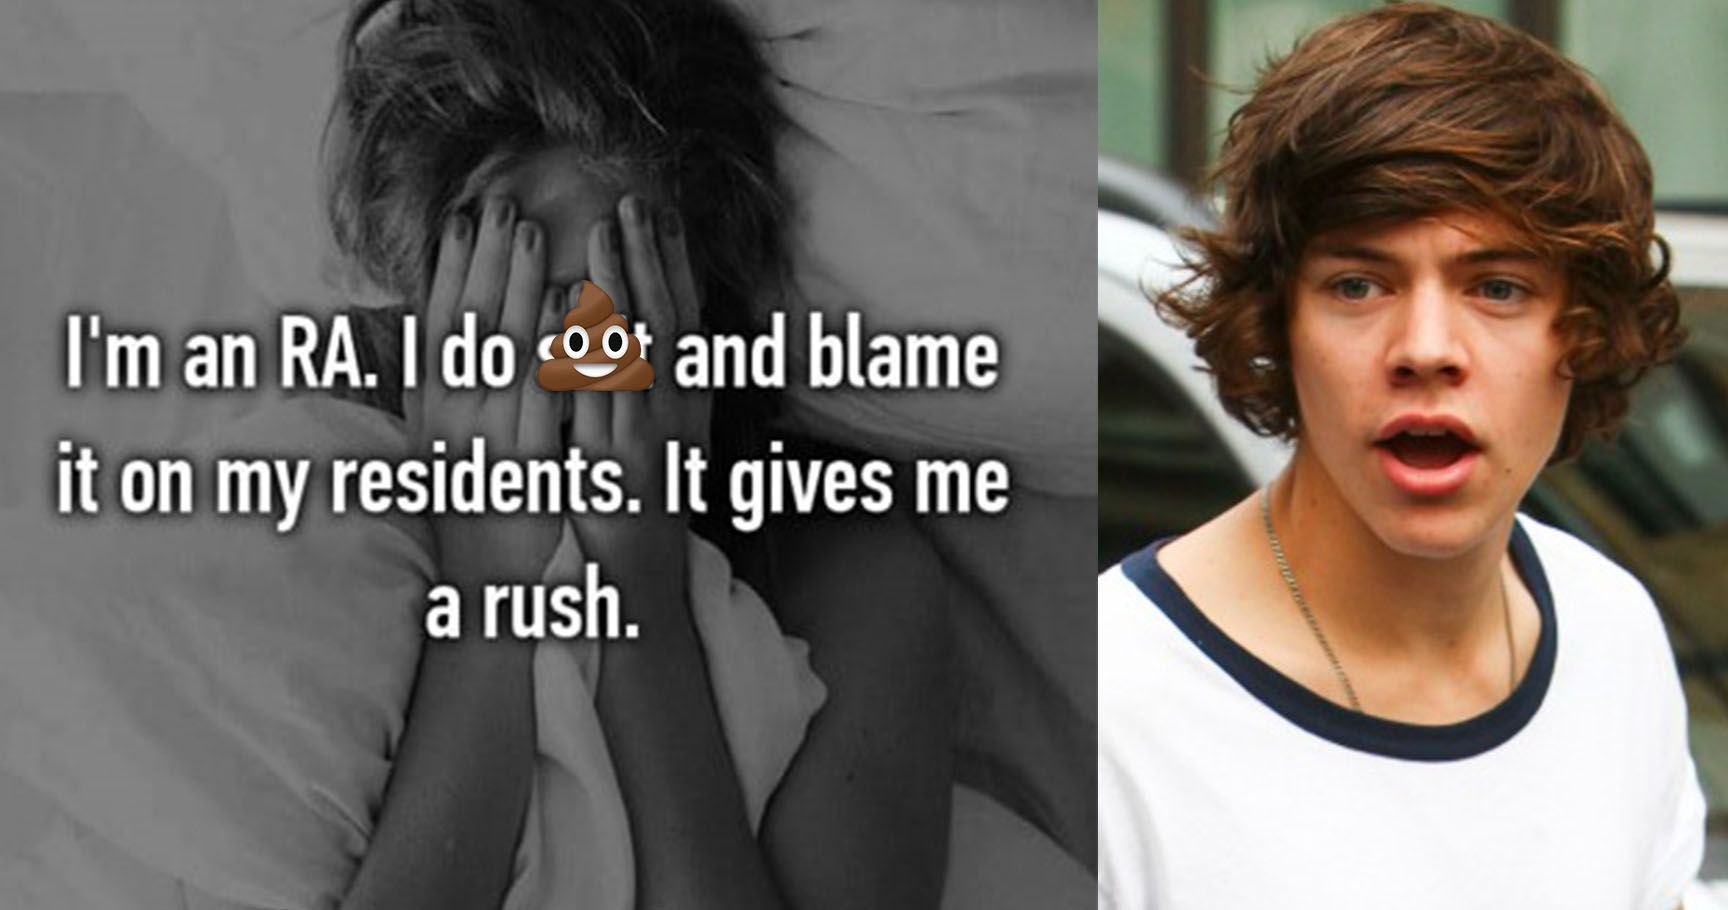 15 Shocking Confessions From College RAs That Will Change How You Look At Them Forever